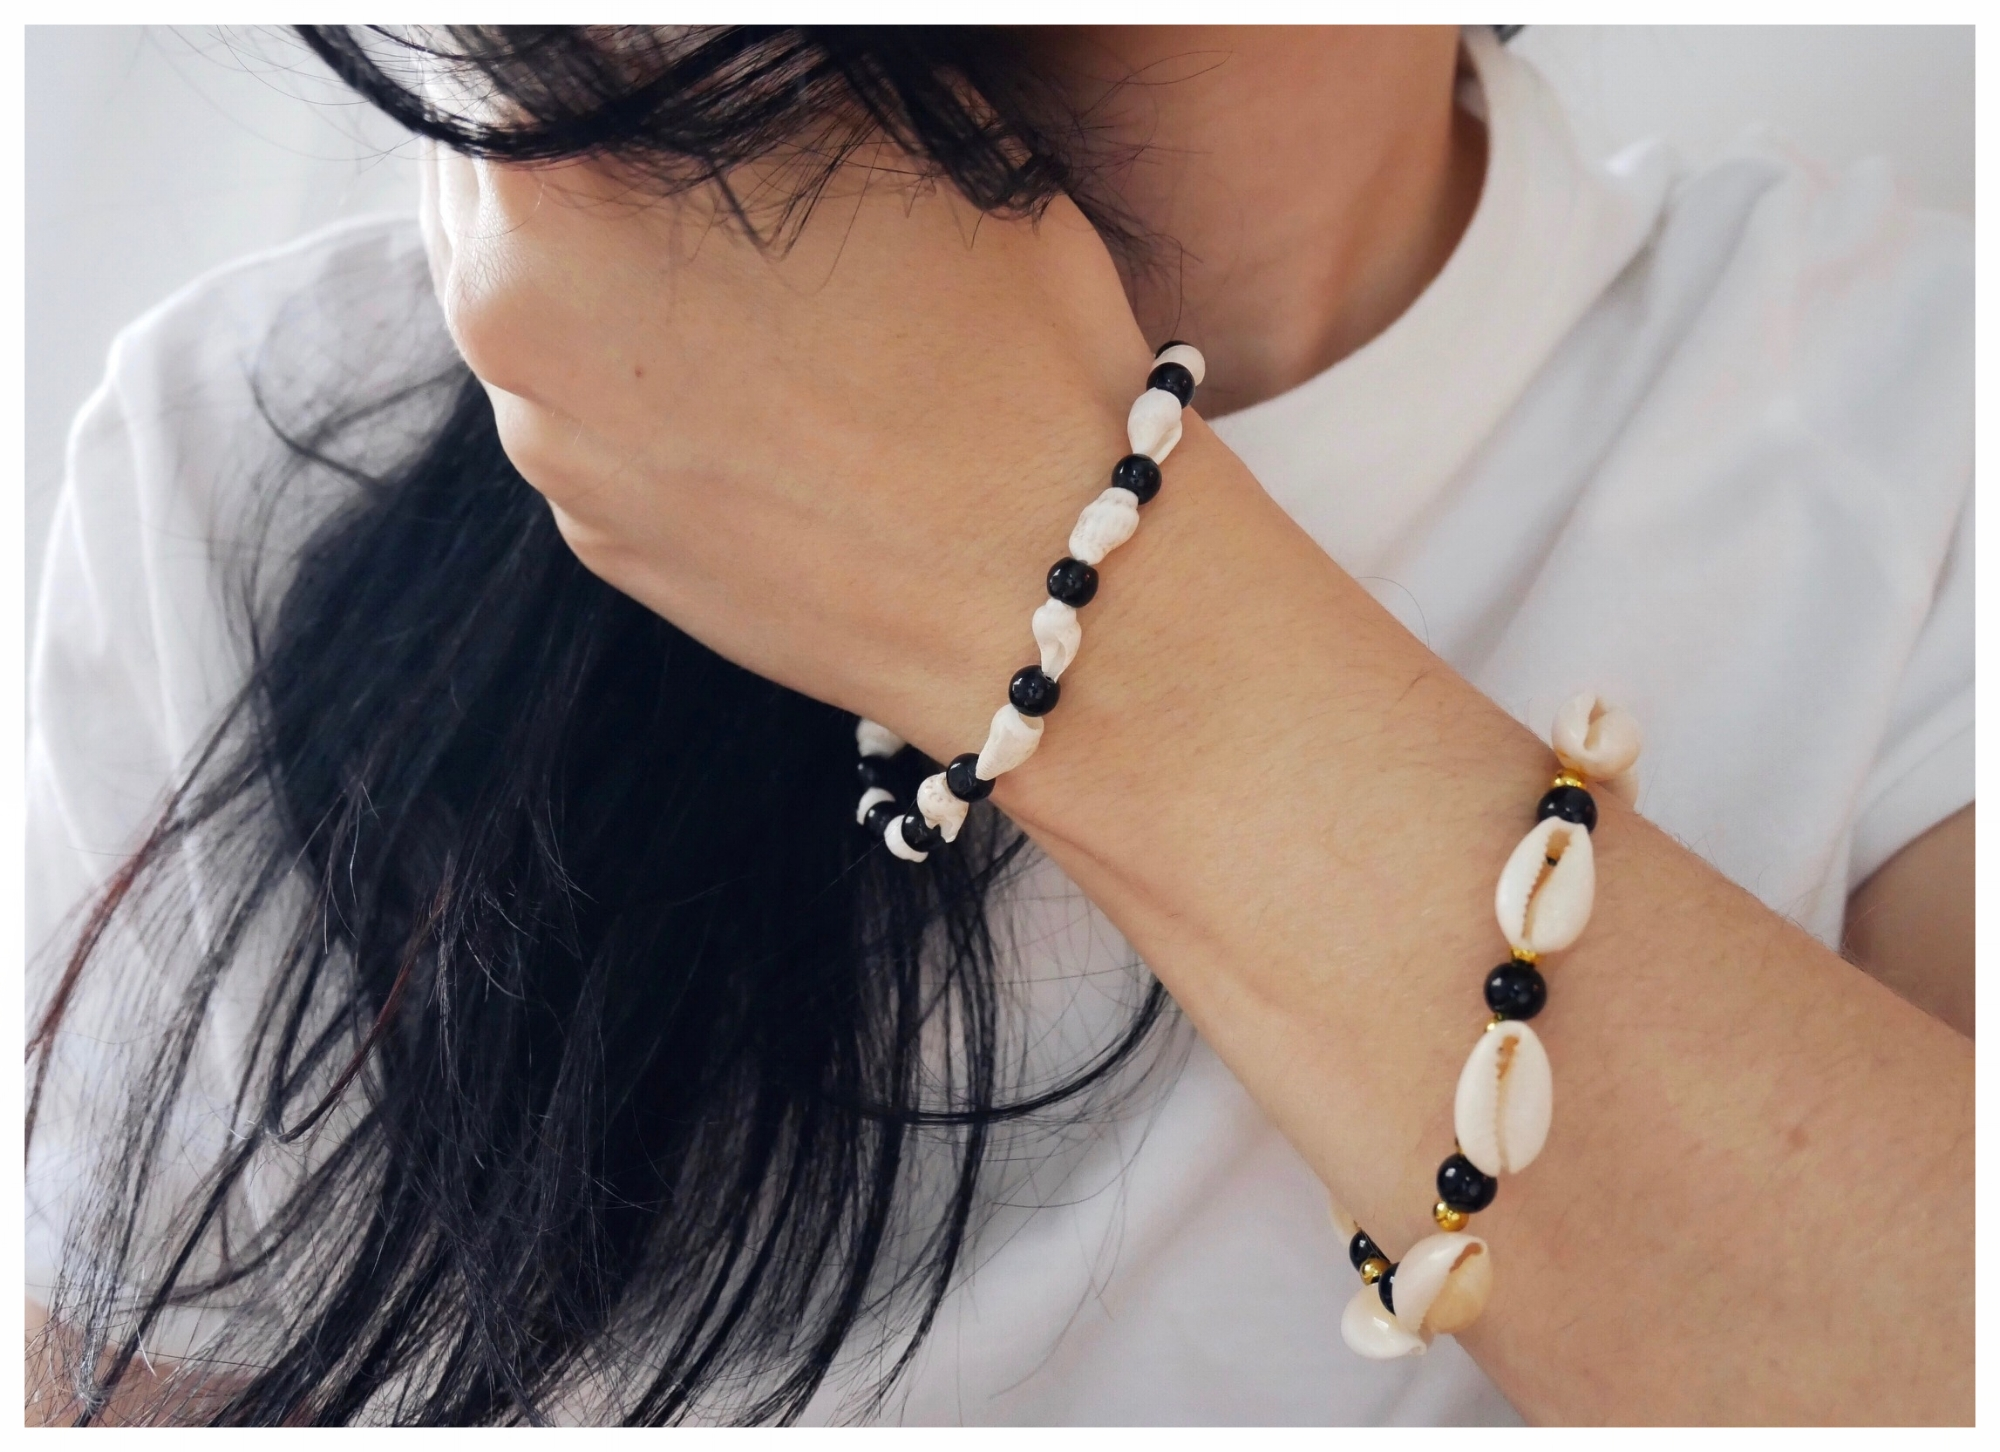 Shell Jewelry bracelet corporate office work fashion blog